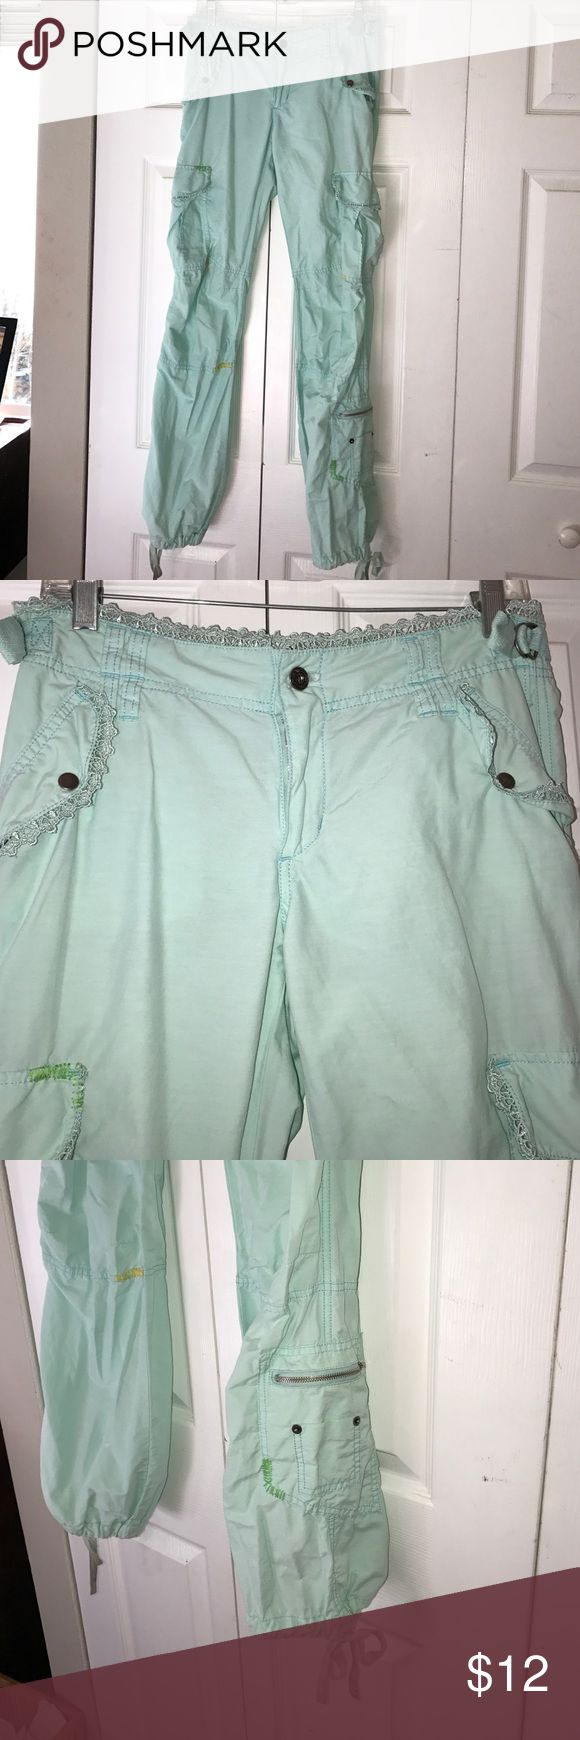 Miss Me aqua pants Soft aqua pants with adjustable sides, lace detailing, and yellow and green stitching Miss Me Pants Trousers